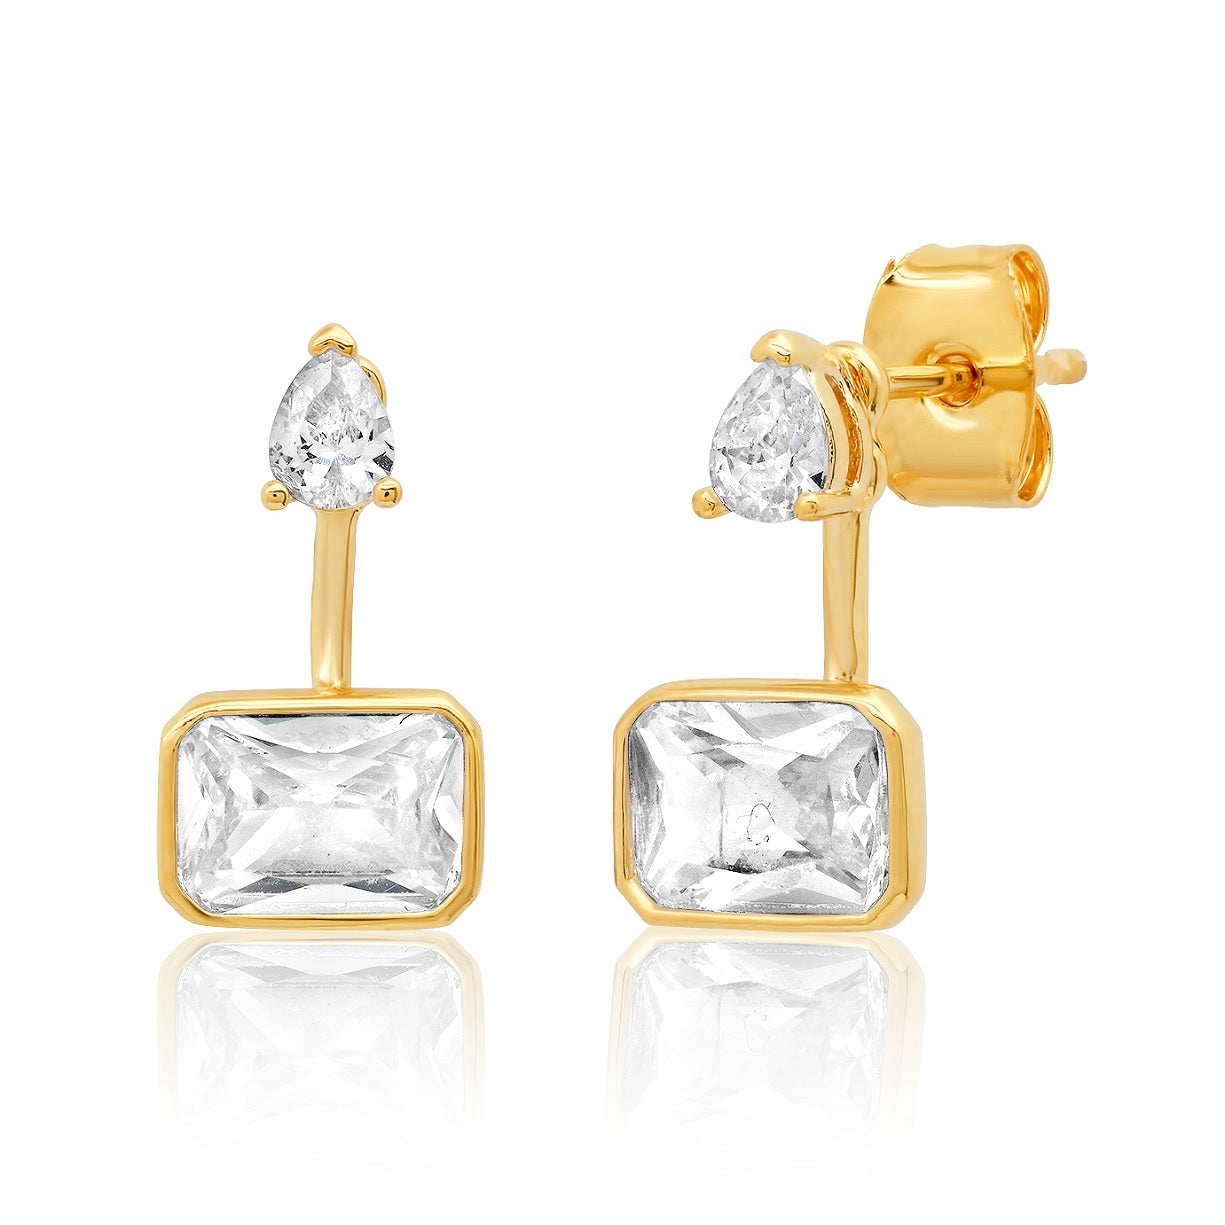 Pear and Emerald Cut Ear Jackets